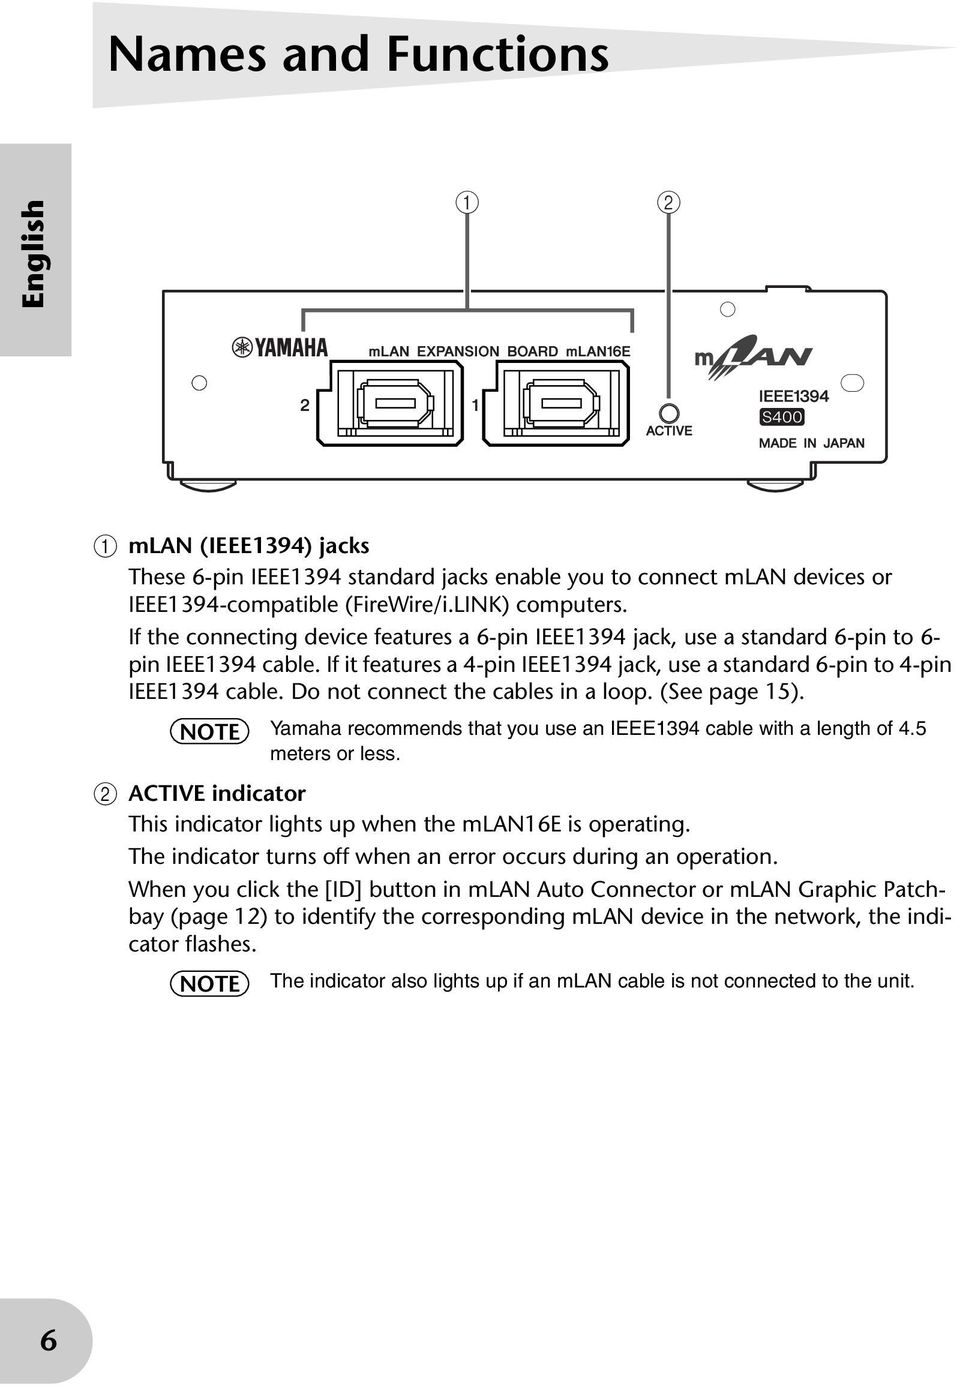 Do not connect the cables in a loop. (See page 15). NOTE Yamaha recommends that you use an IEEE1394 cable with a length of 4.5 meters or less.